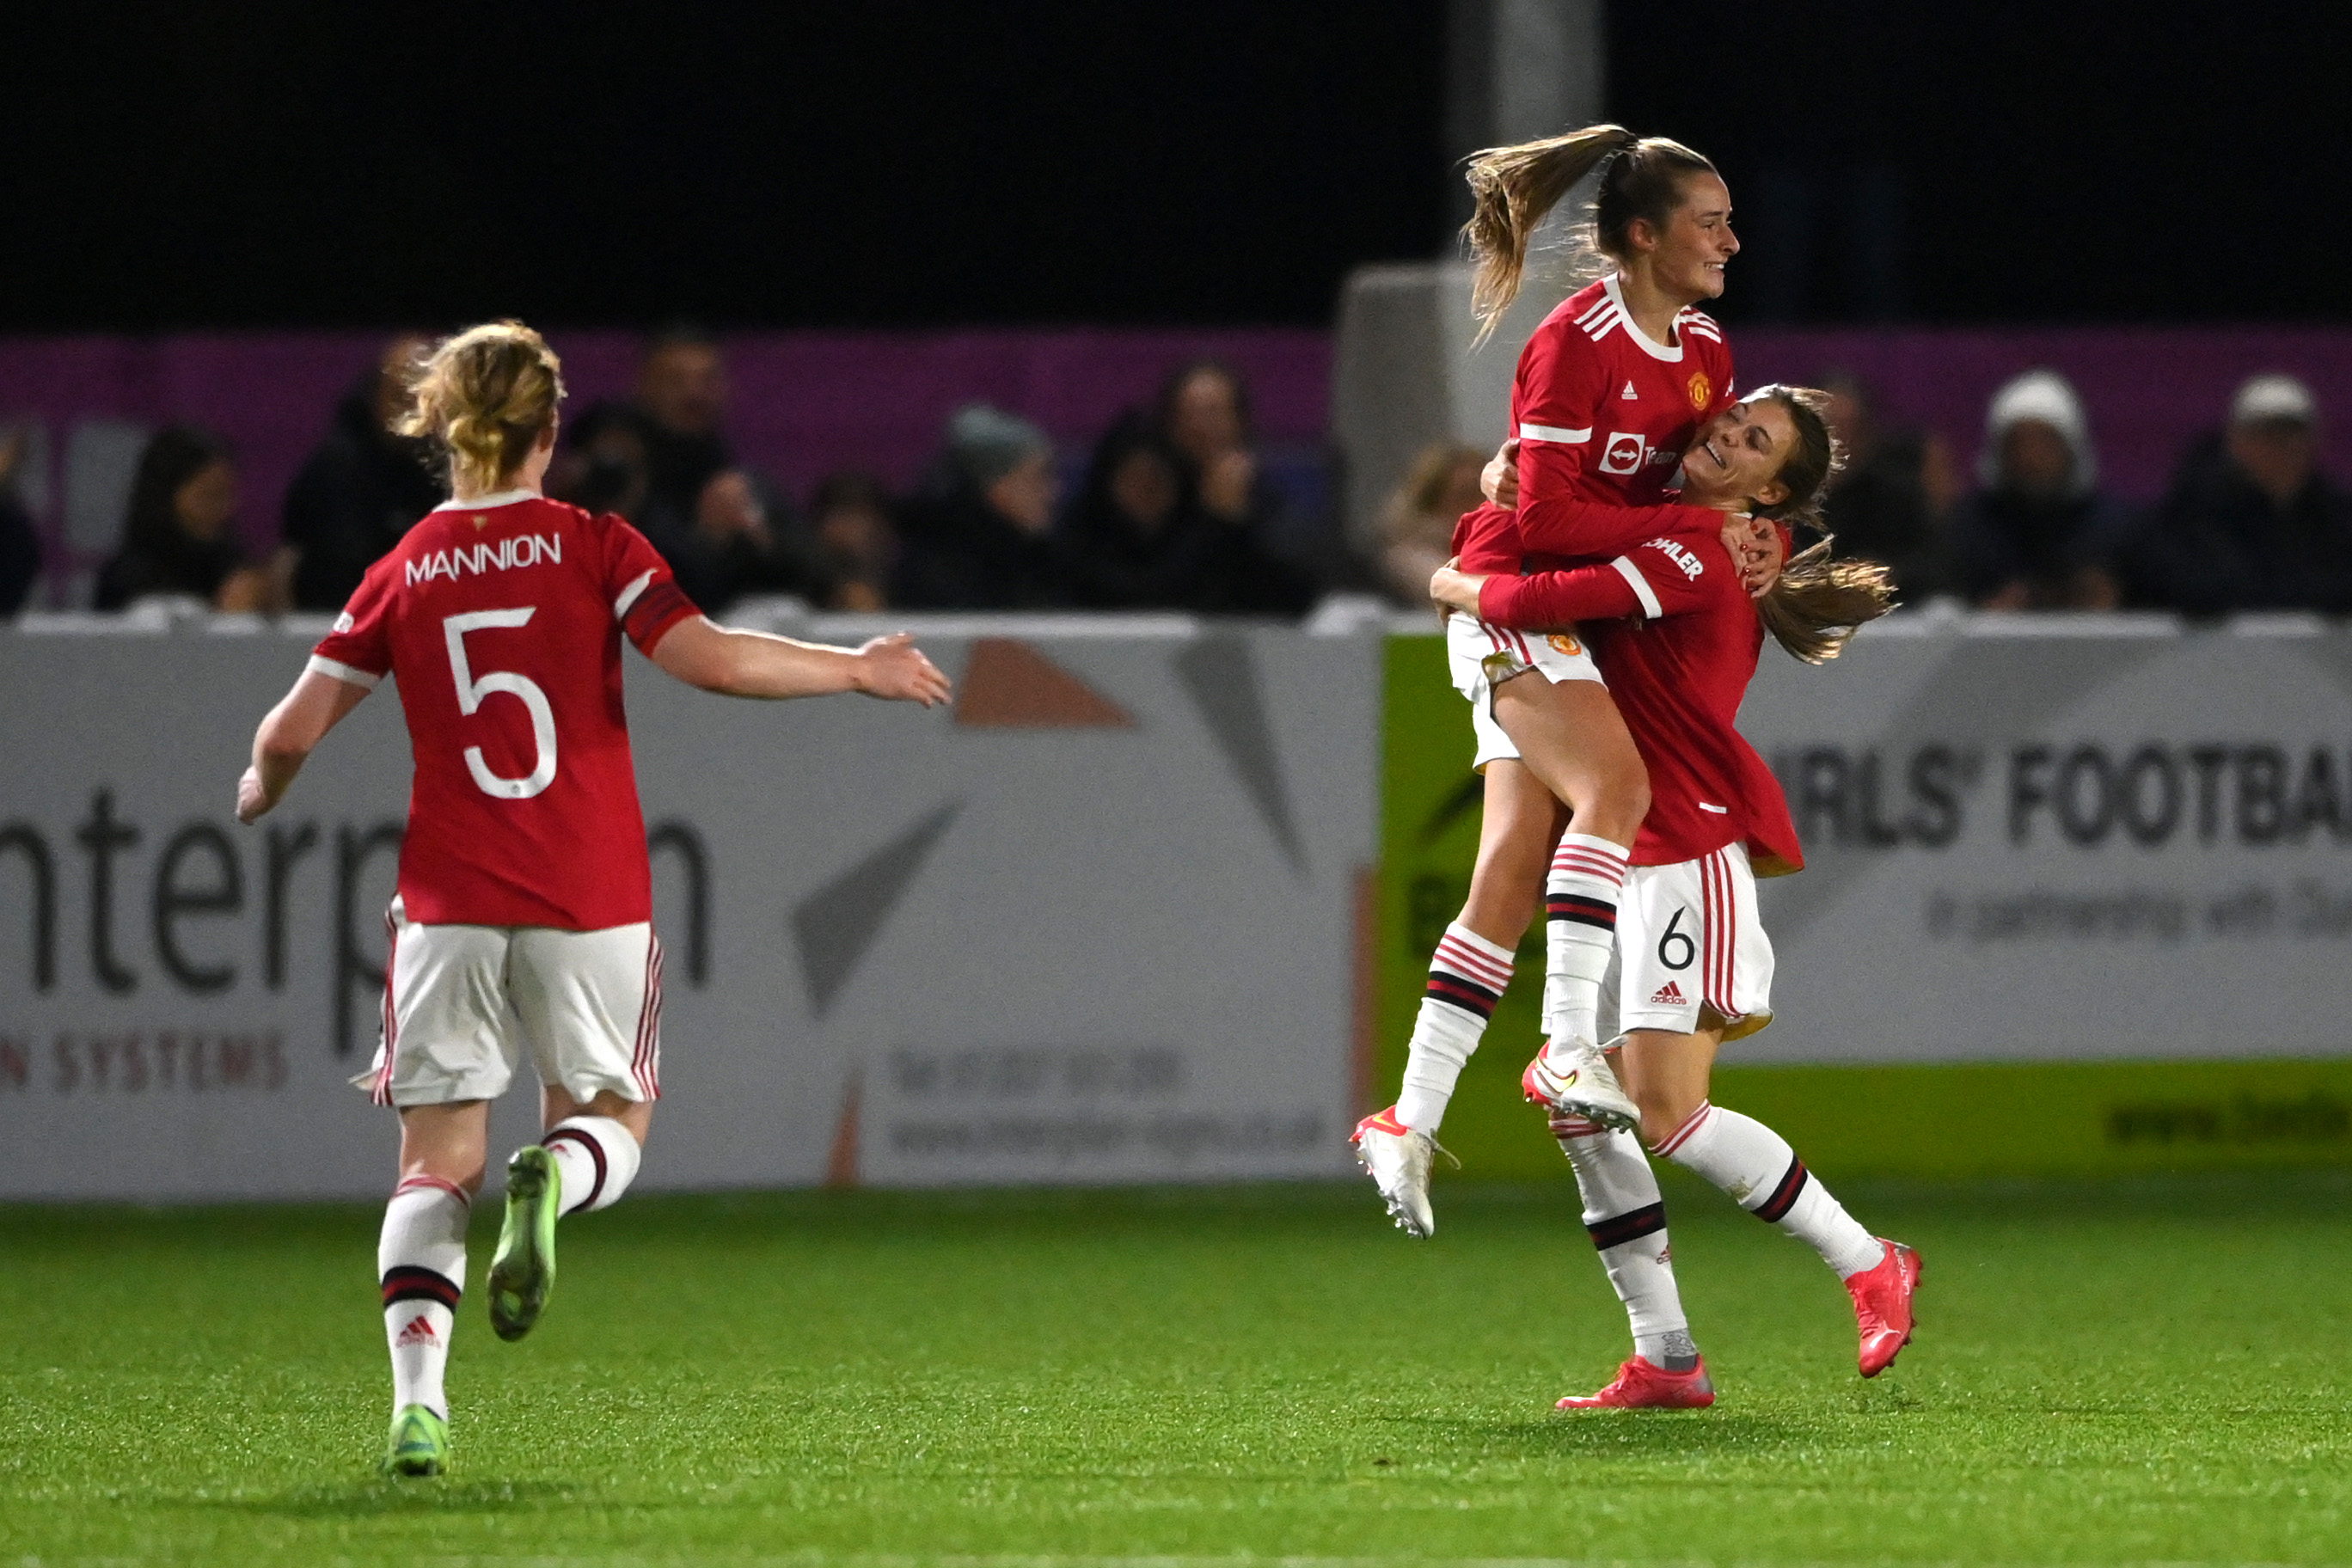 Durham Women v Manchester United Women - FA Women's Continental Tyres League Cup